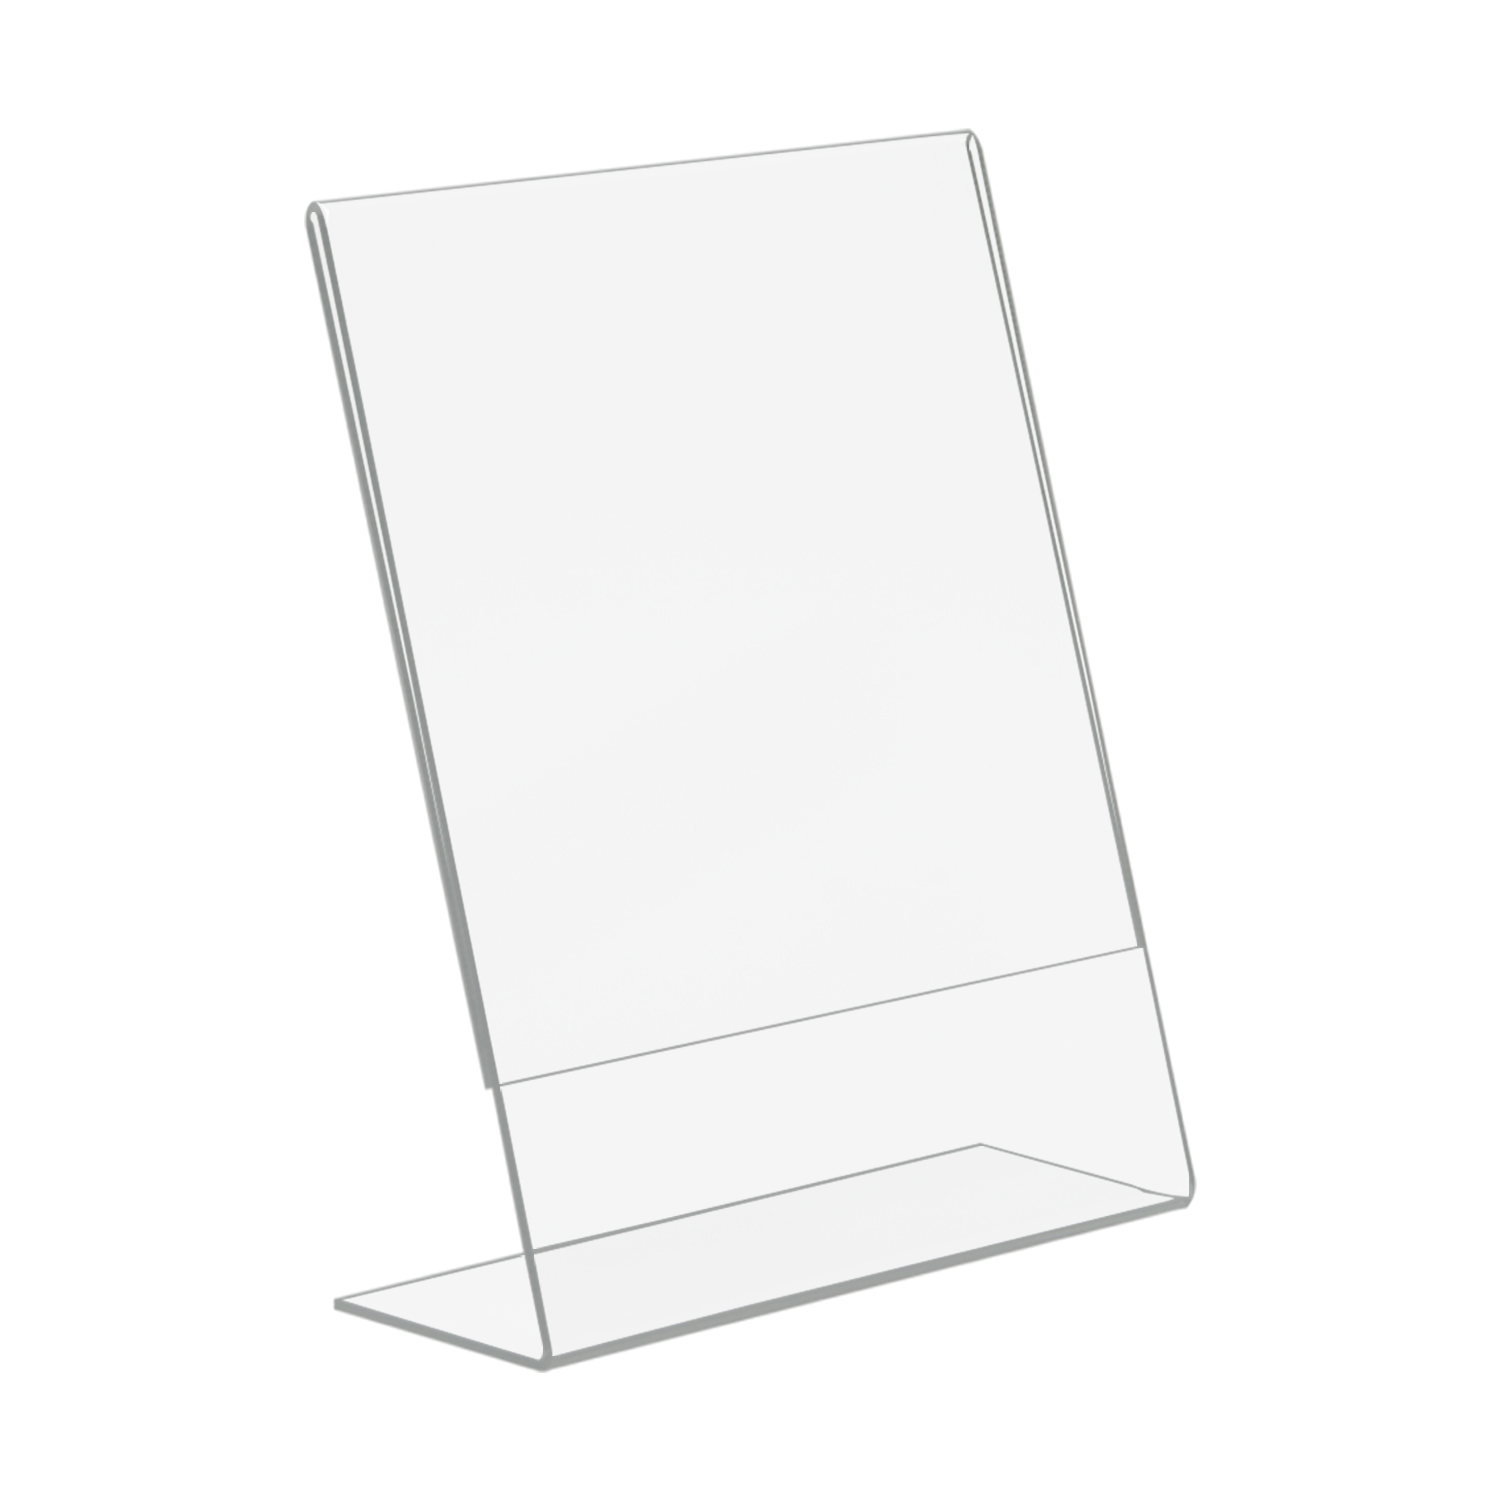 5x7 slant back acrylic sign holder buy acrylic displays shop acrylic pop displays online. Black Bedroom Furniture Sets. Home Design Ideas